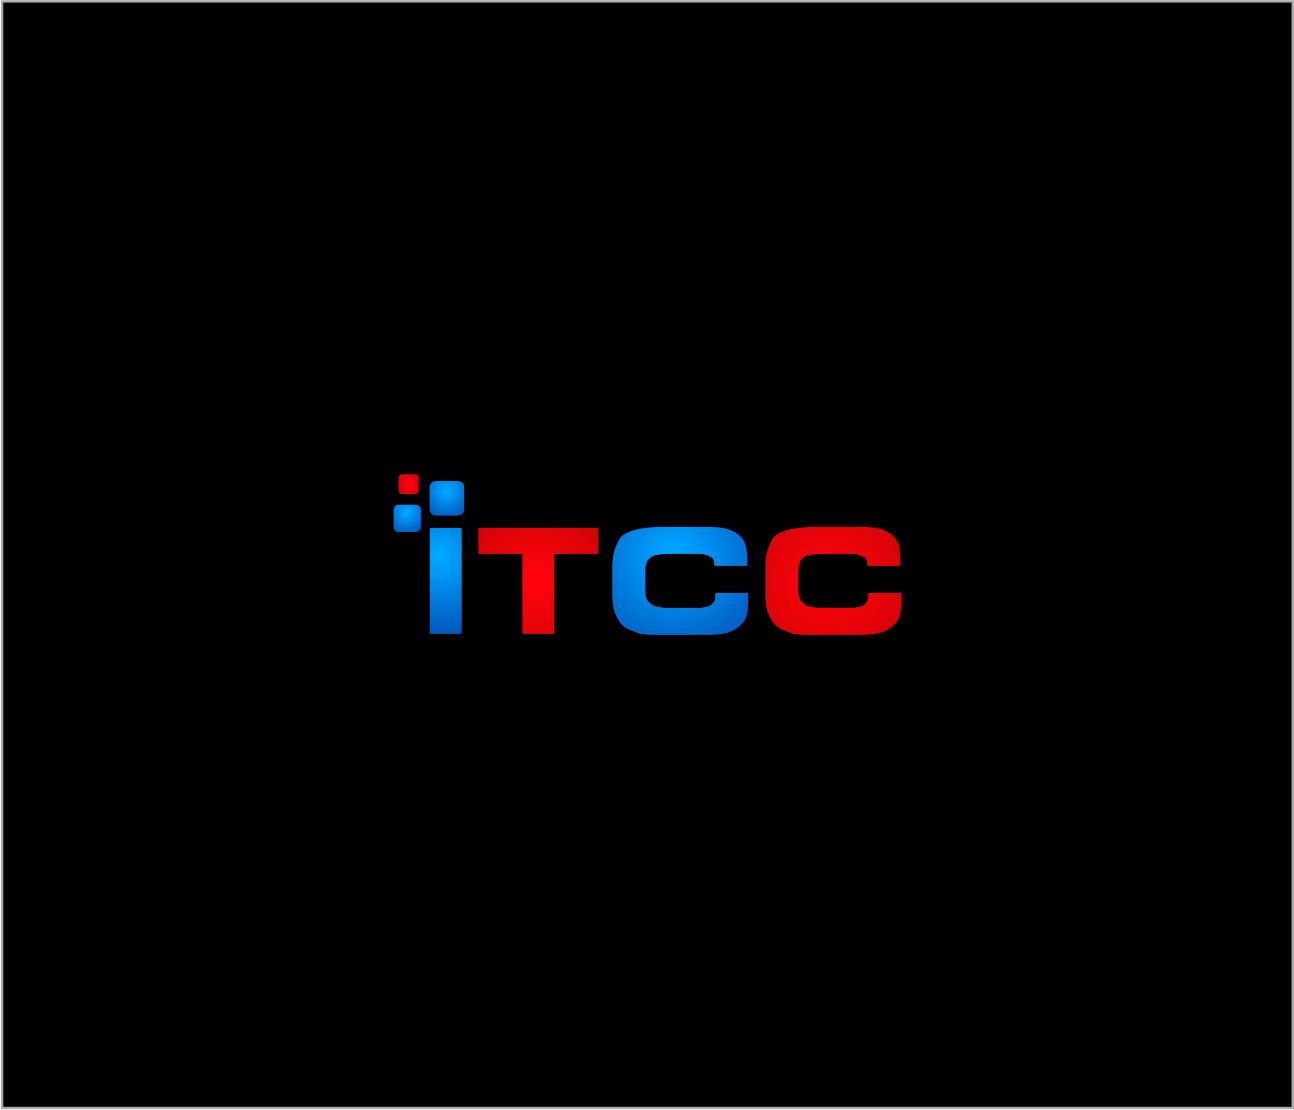 Logo Design by Armada Jamaluddin - Entry No. 36 in the Logo Design Contest Inspiring Logo Design for ITCC.